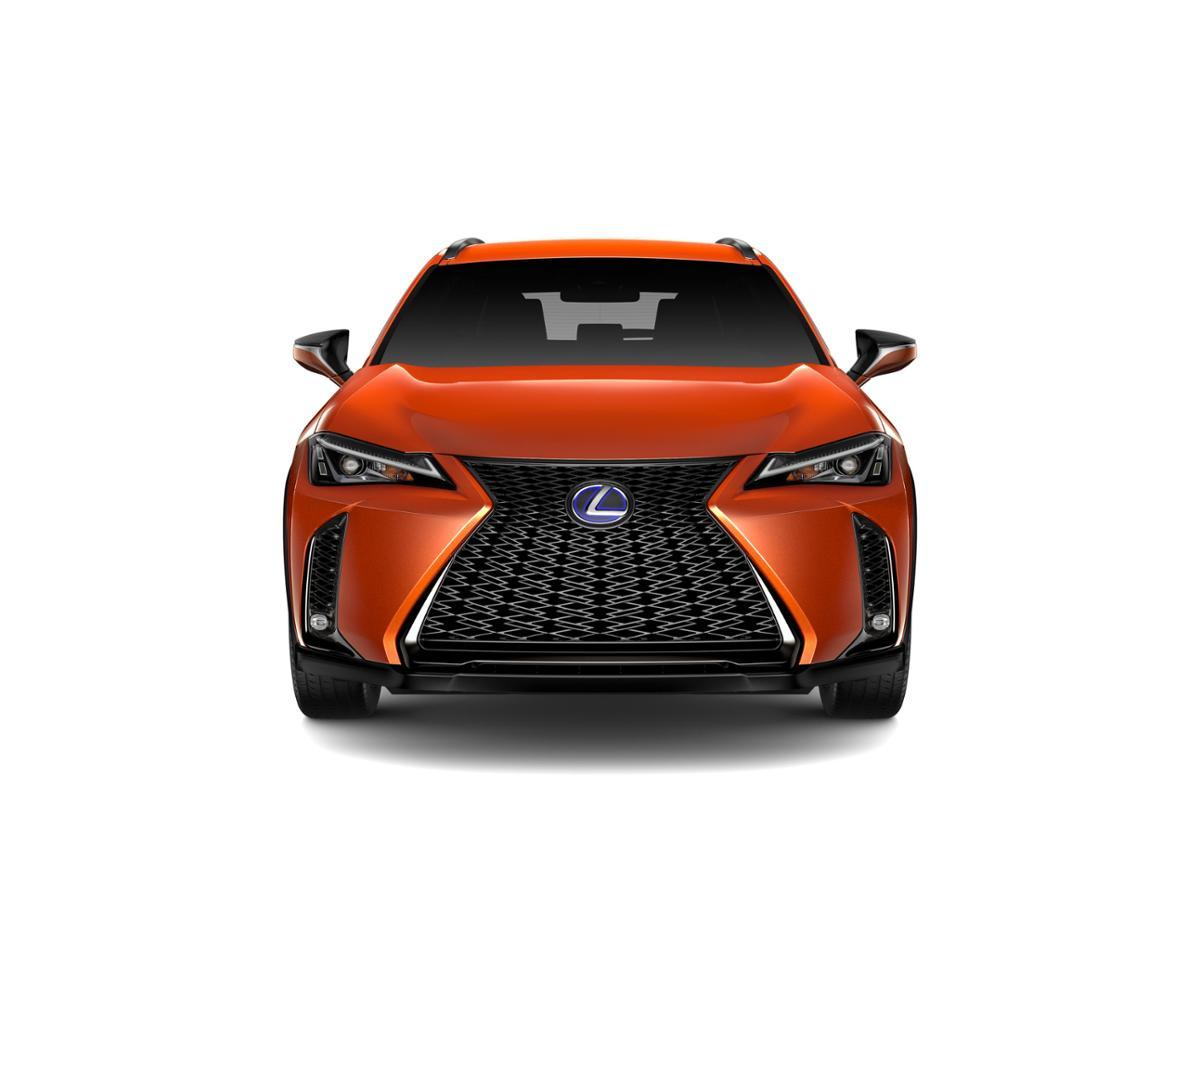 2019 Lexus UX 250h Vehicle Photo in Danvers, MA 01923